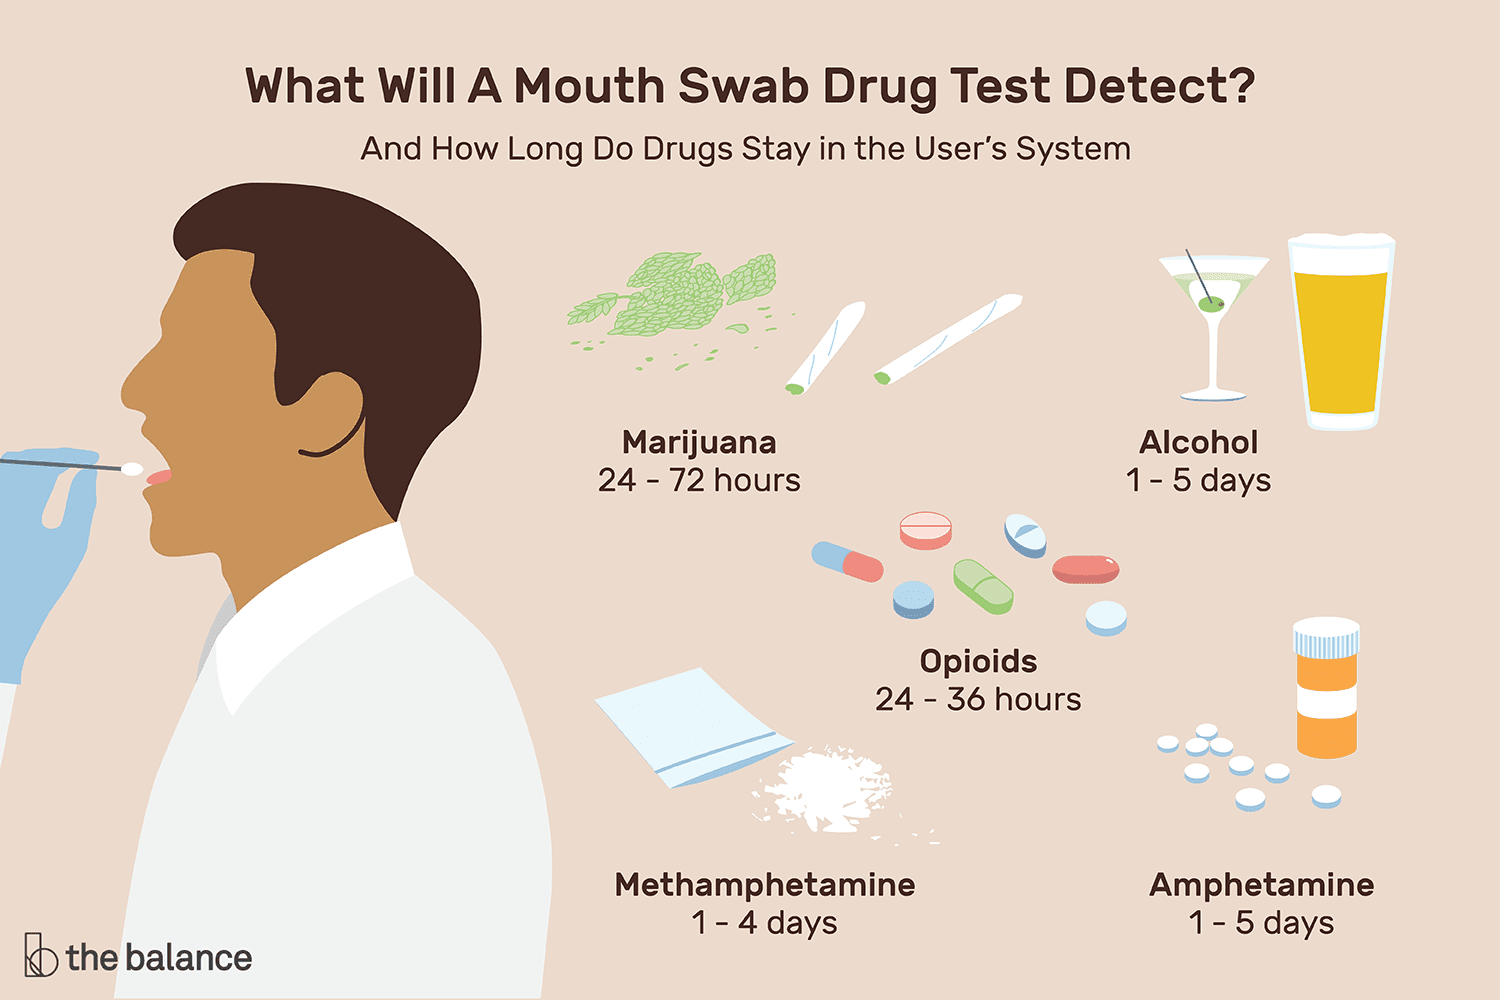 What Is A Mouth Swab Drug Test